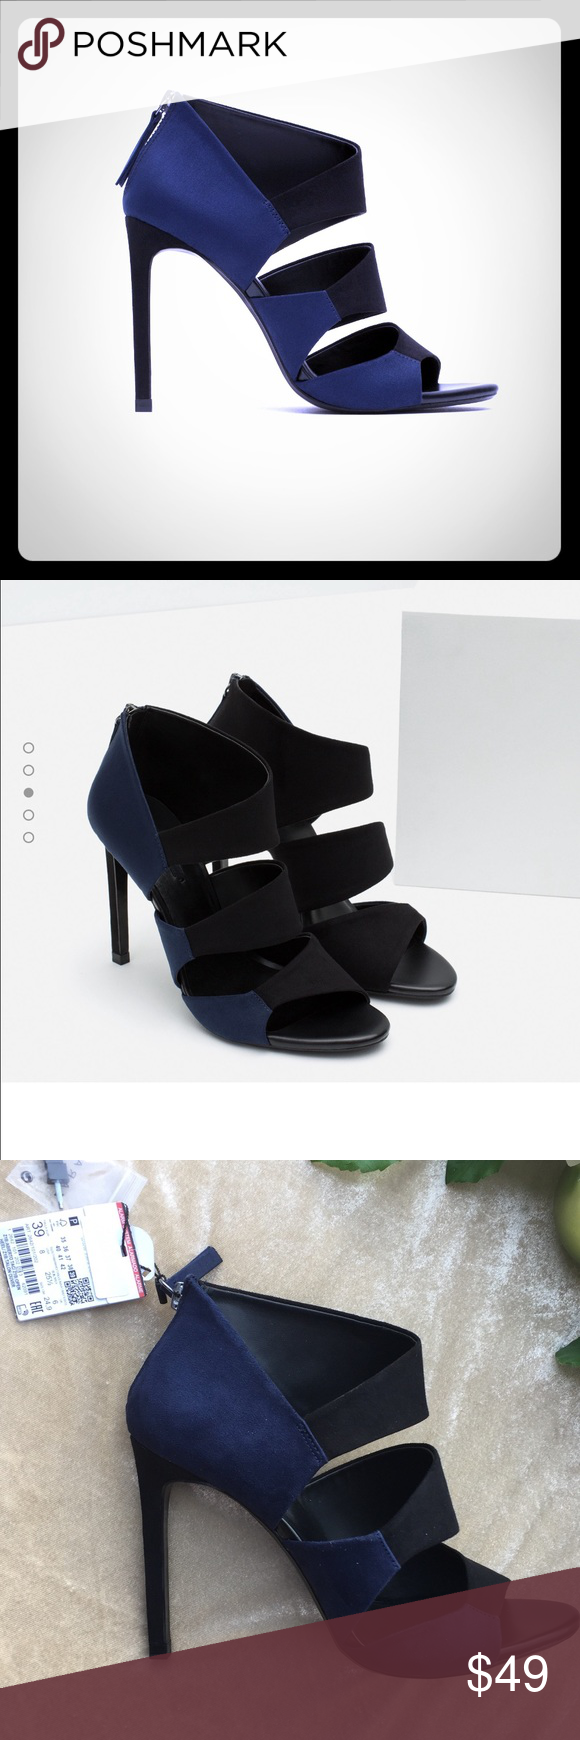 ad3cdf297515 ZARA Two toned high heel sandal. NIB. Sz.8 These are stunning